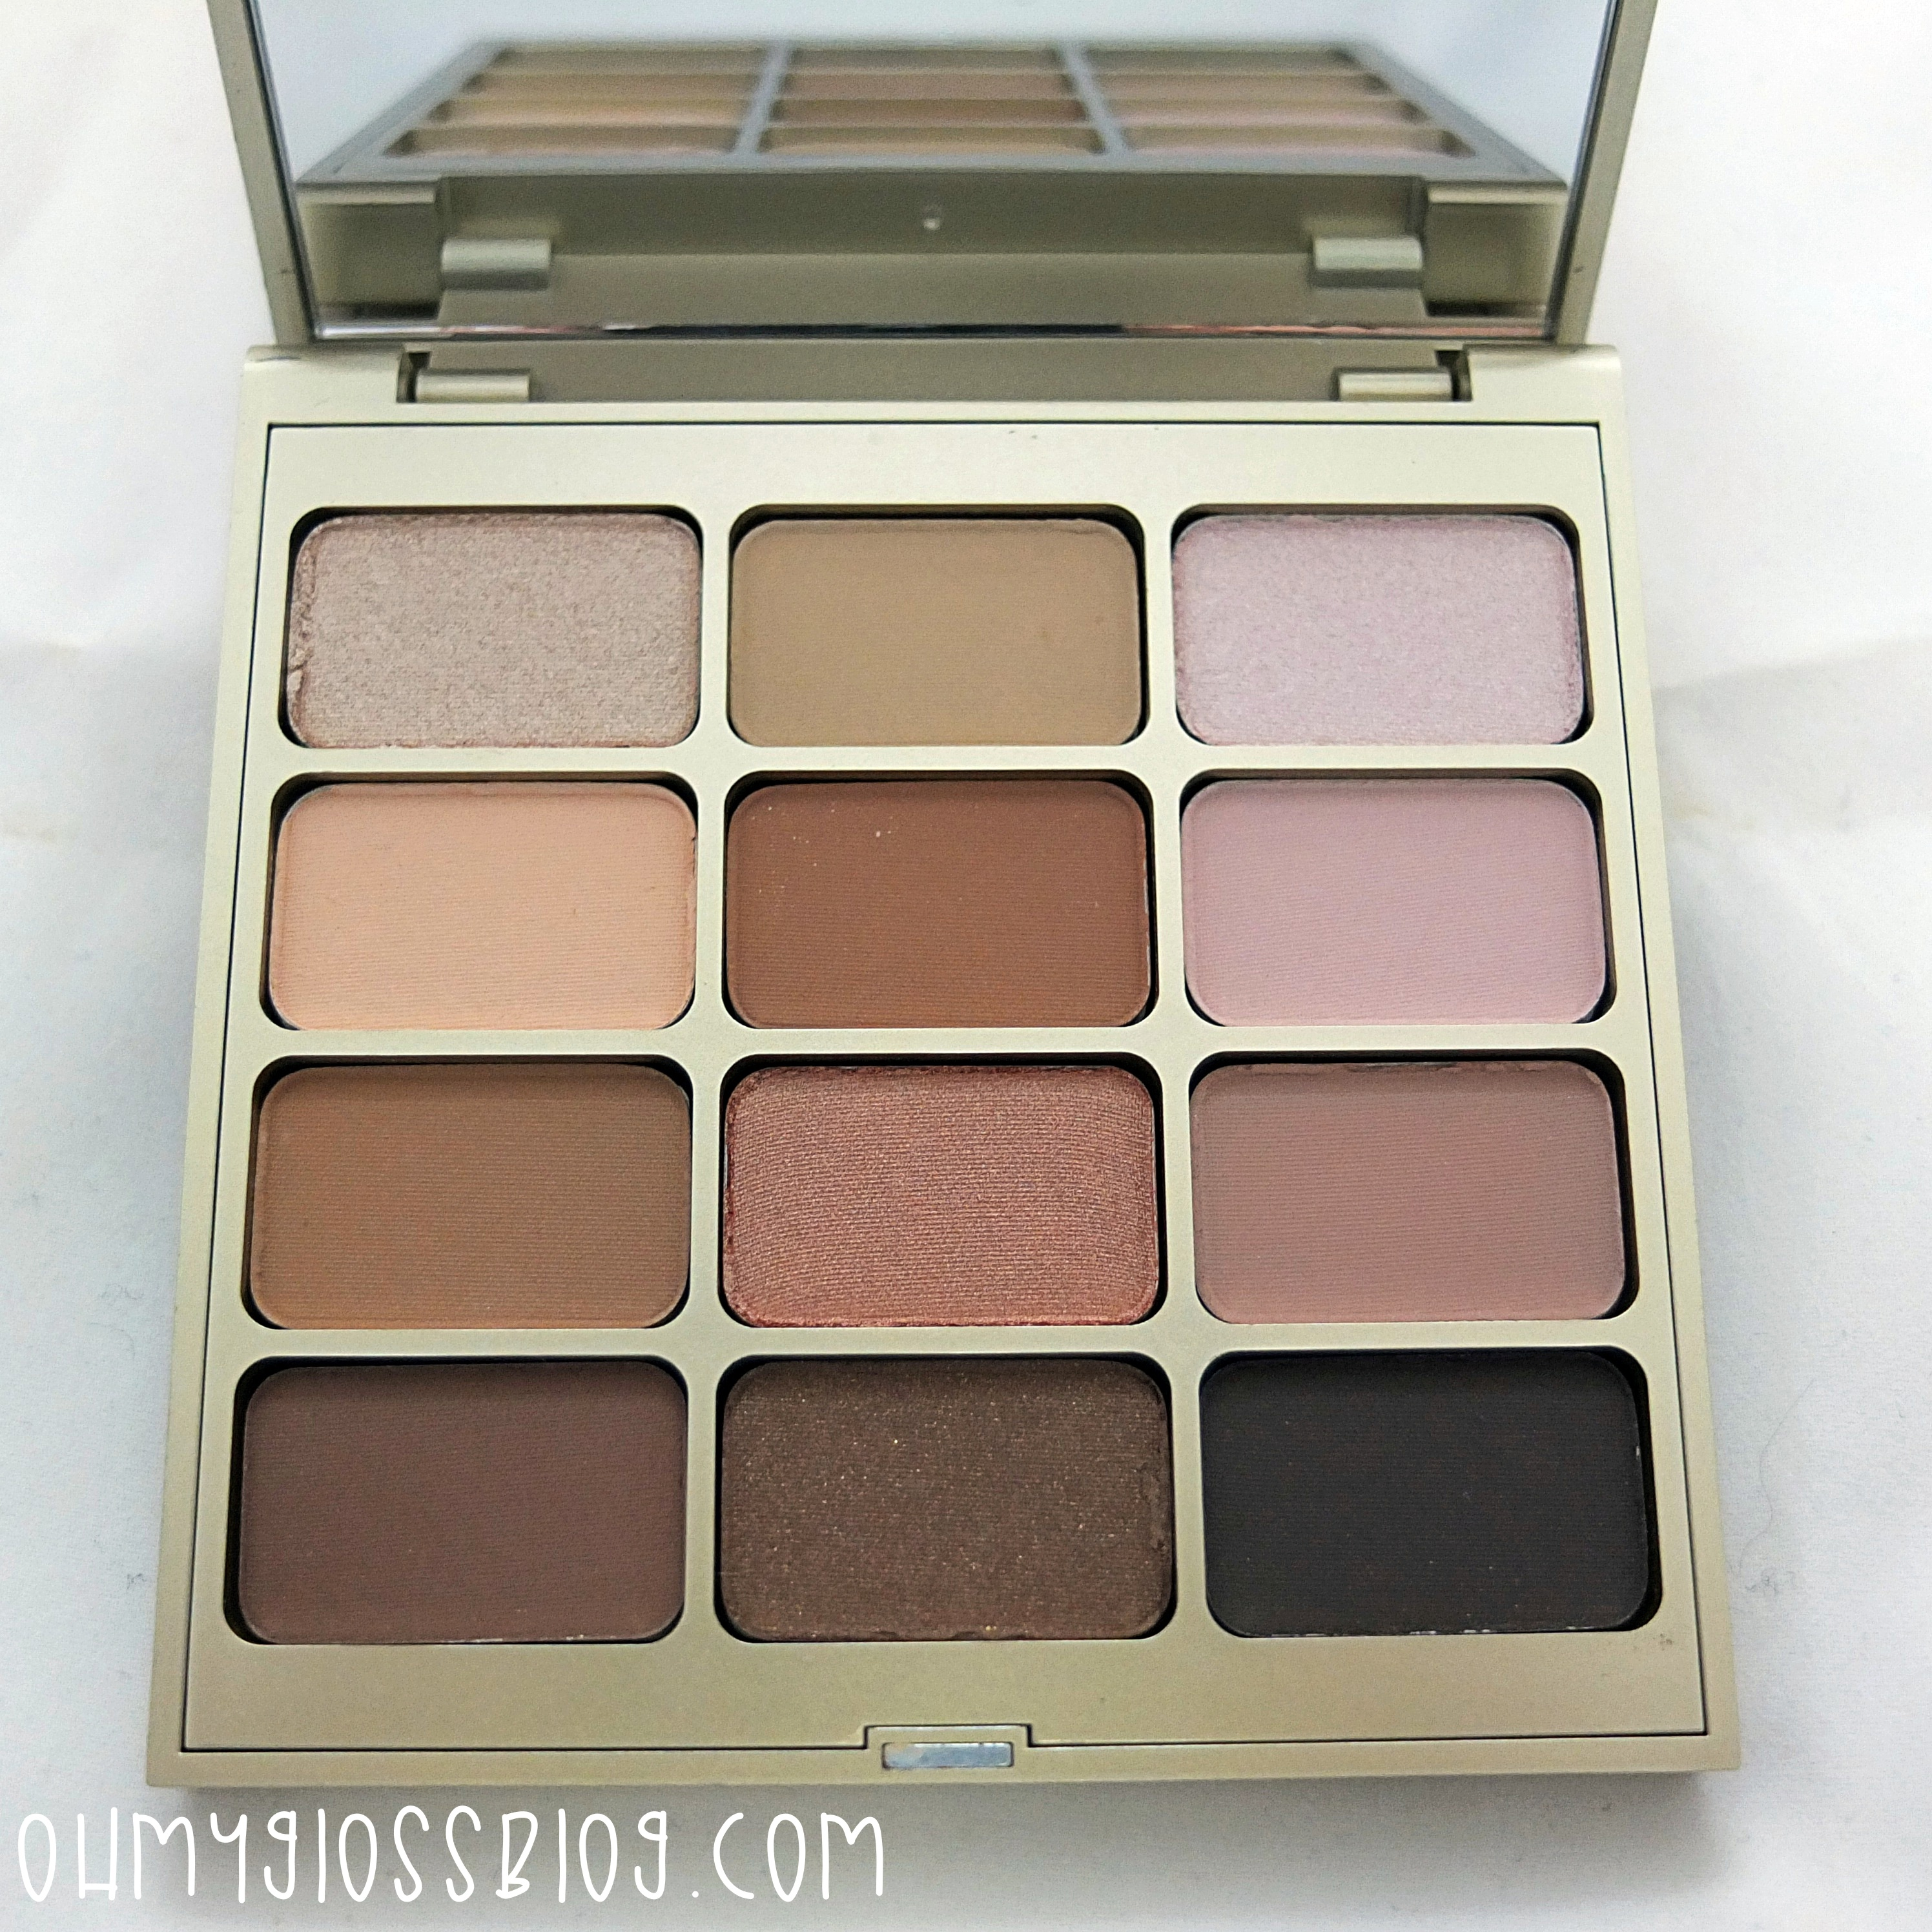 Stila Nouveau Natural Eye Shadow Palette Review Oh My Gloss Blog